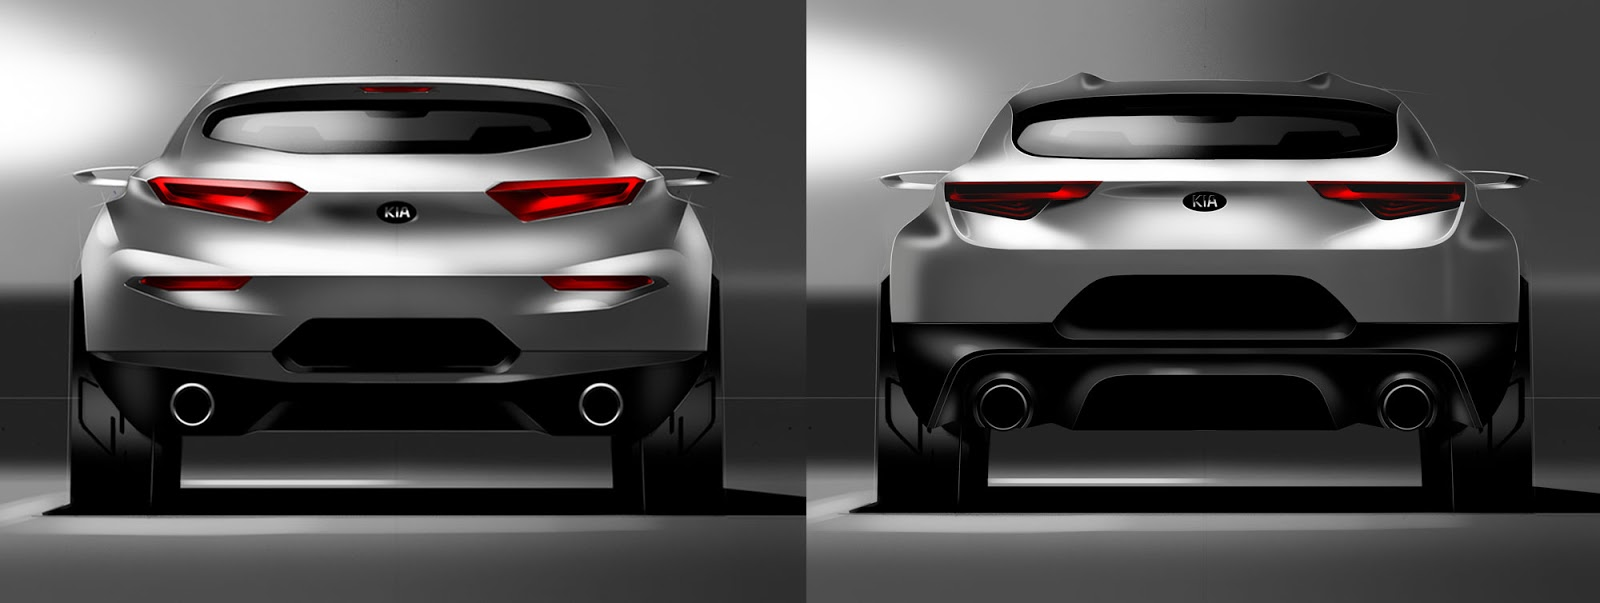 Kia Stonic sketch - two styling options for the rear